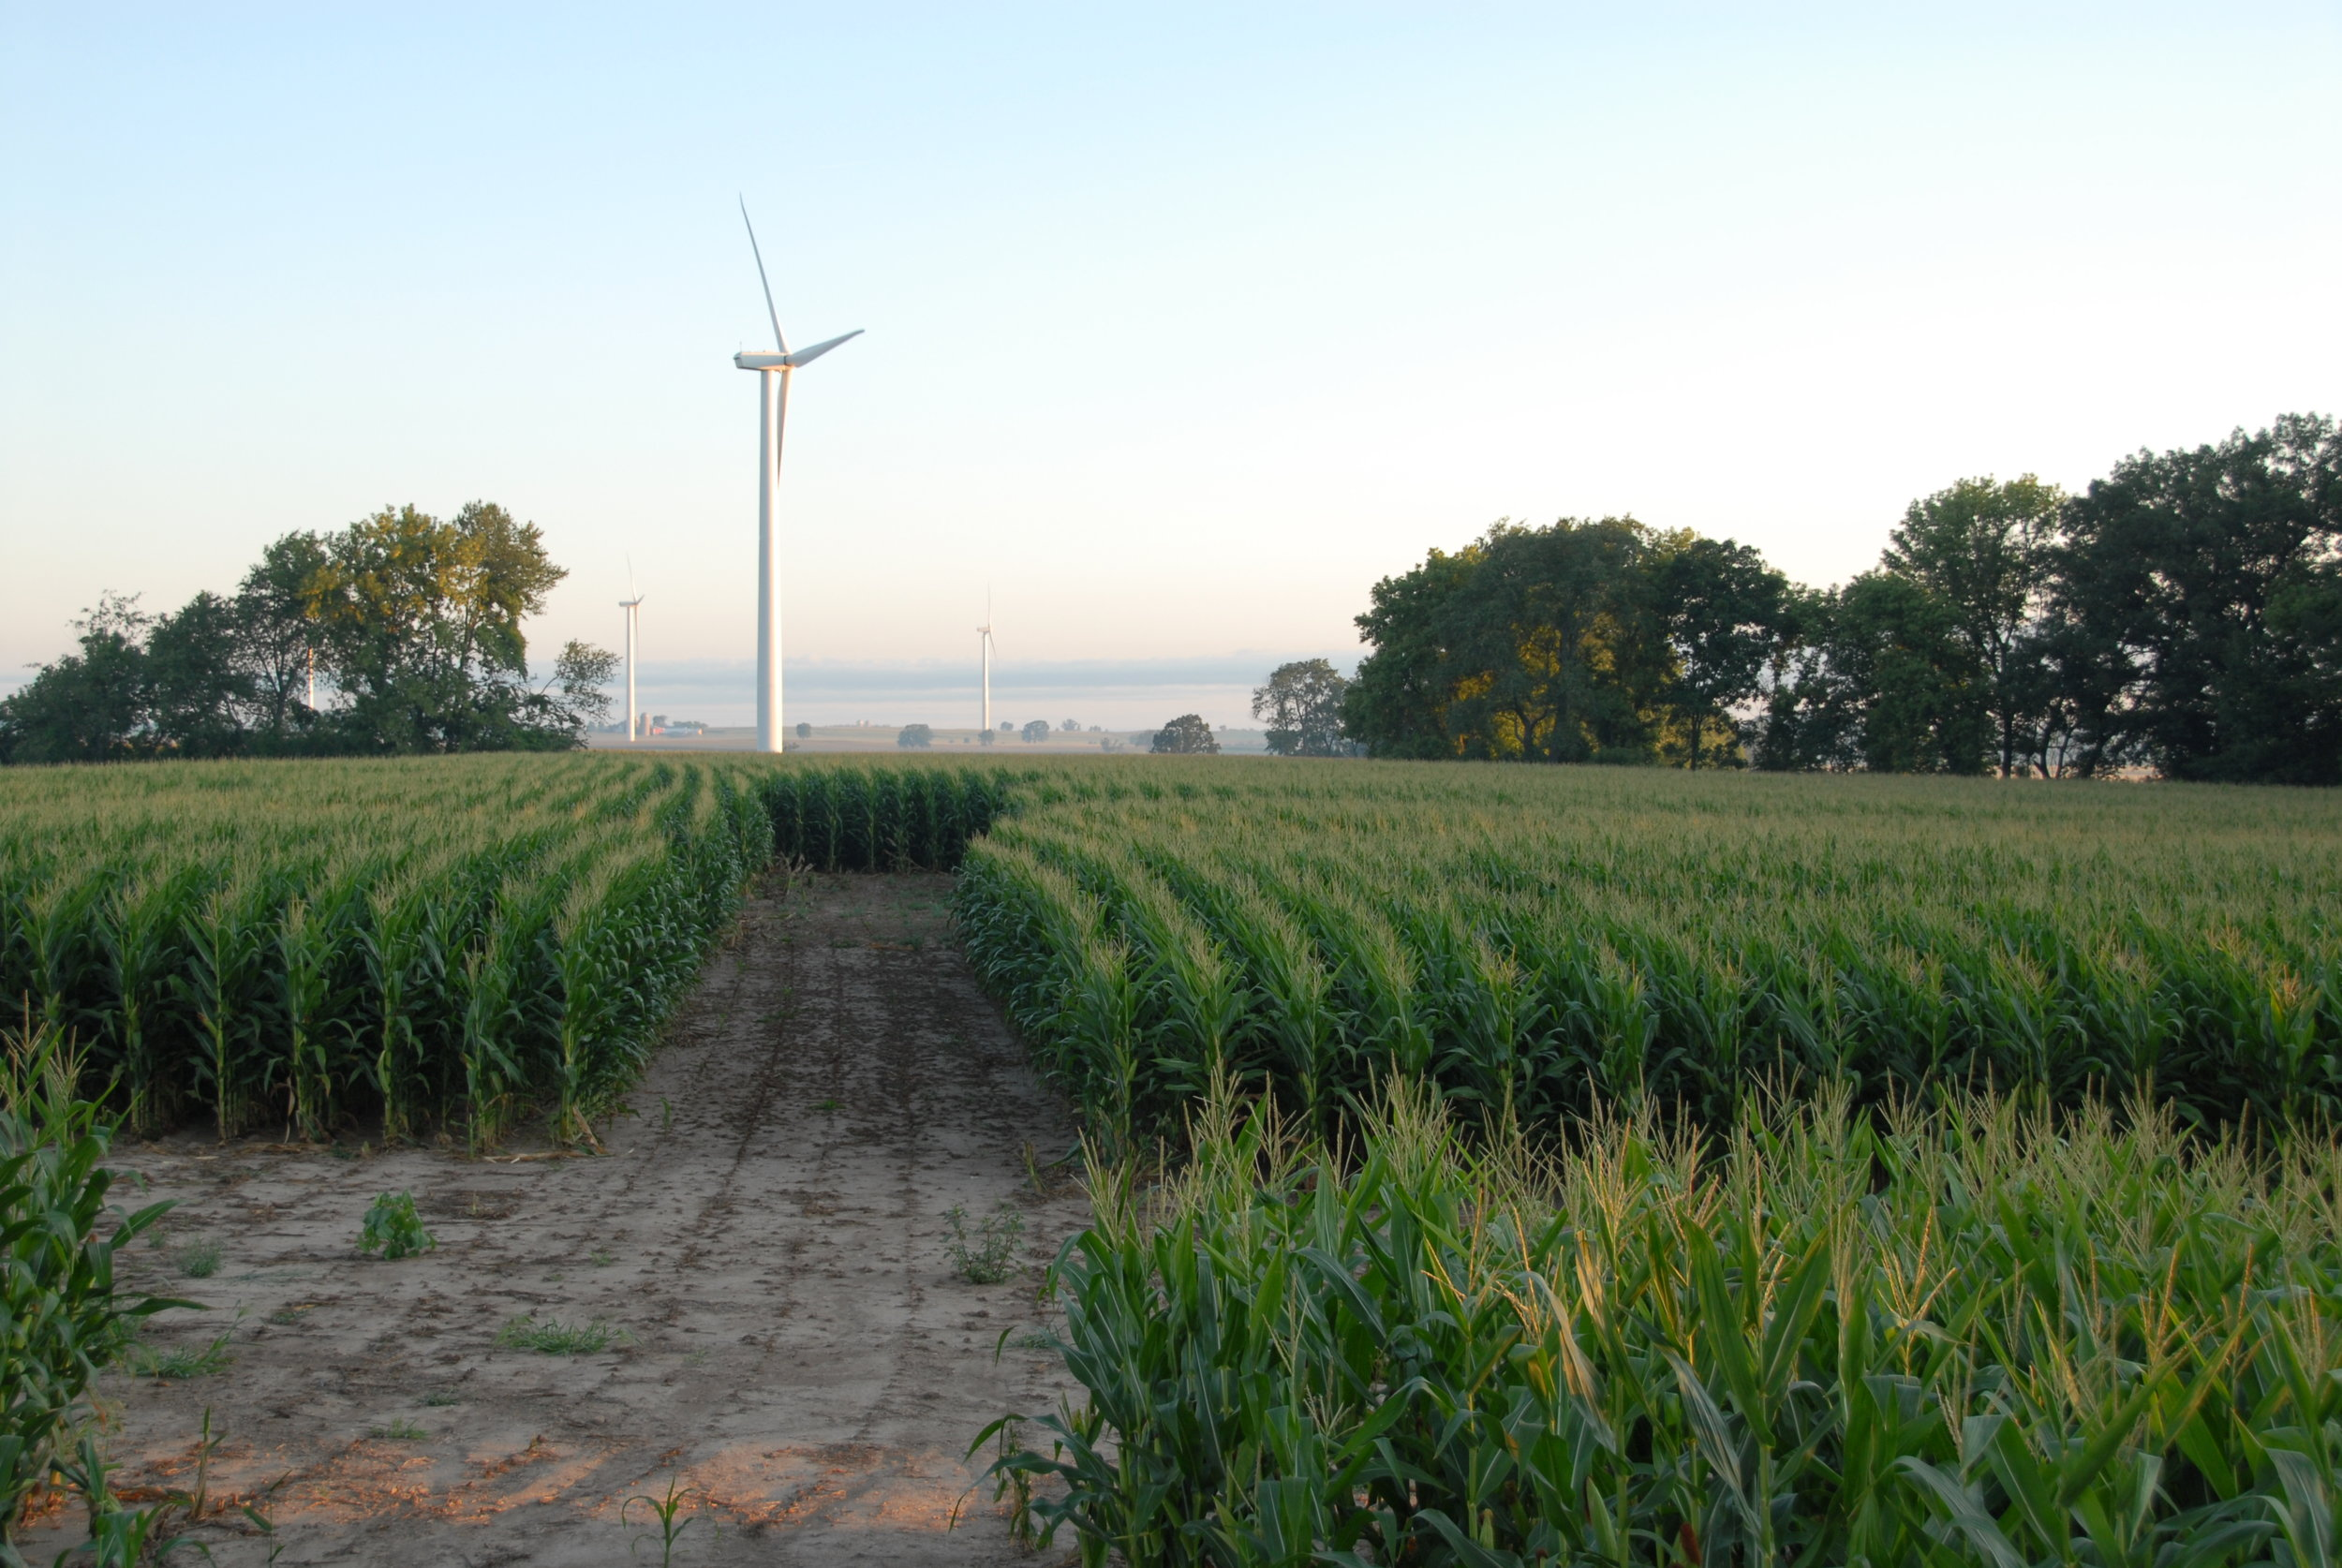 Search transects in a corn field at a wind energy facility in southeastern Wisconsin. Photo by Tom Underwood.